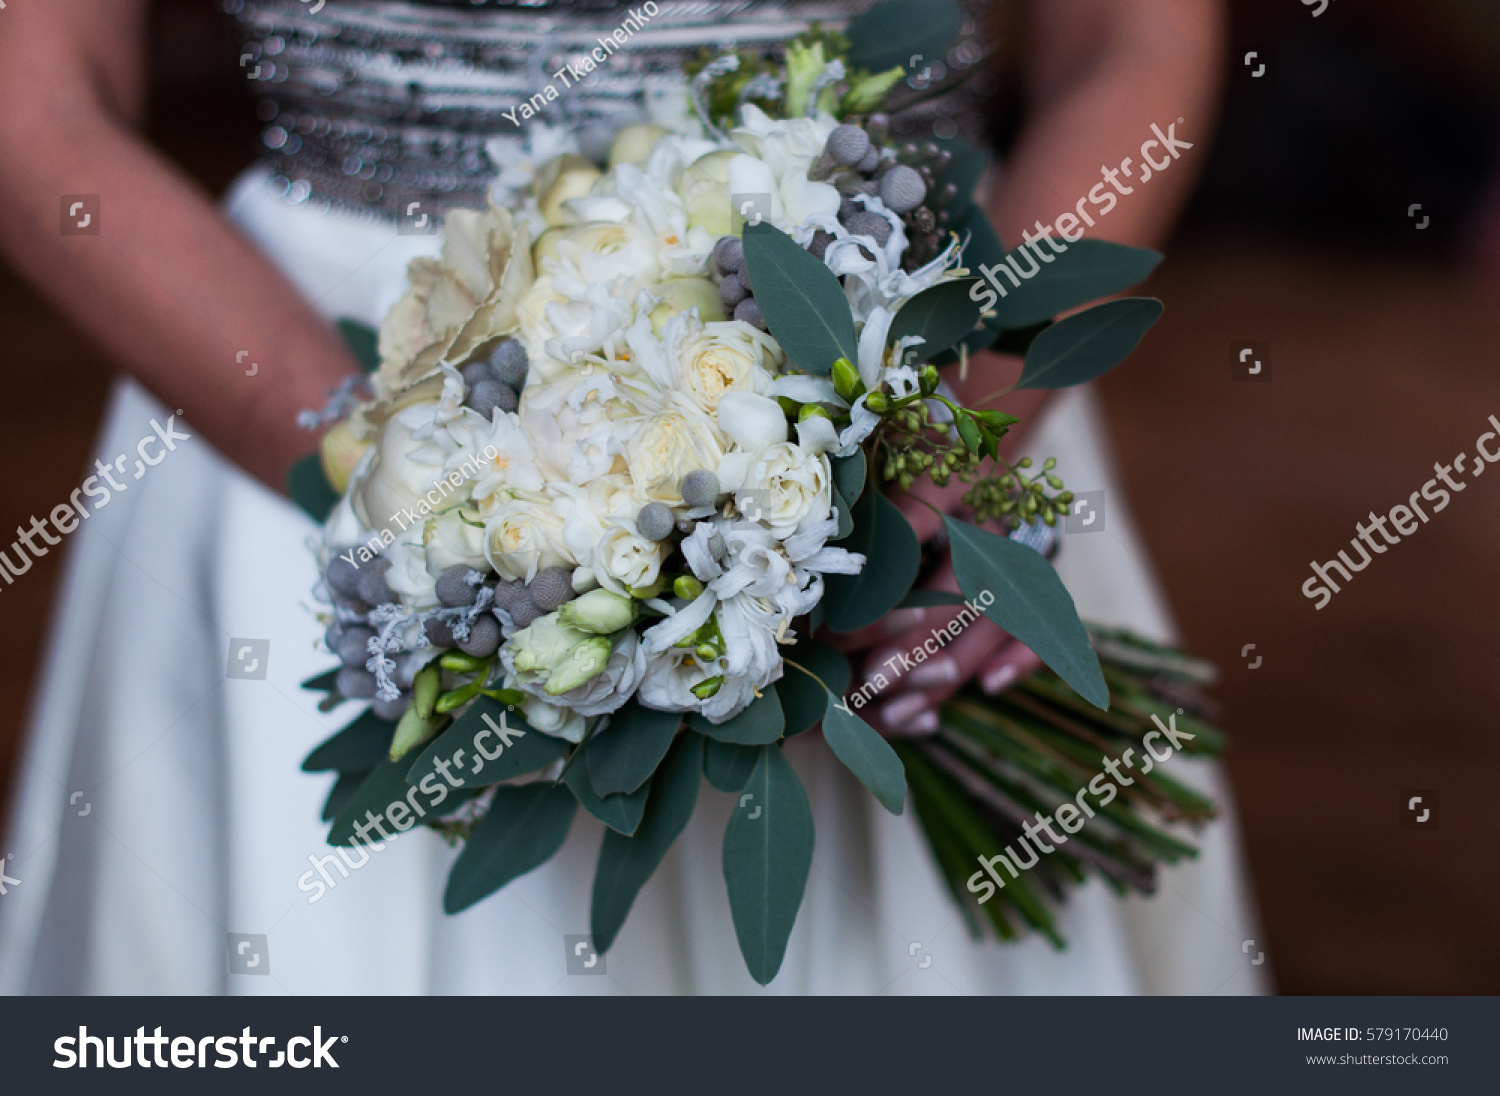 Wedding Bouquet With White Flowers Grey Berries And Greenery Ez